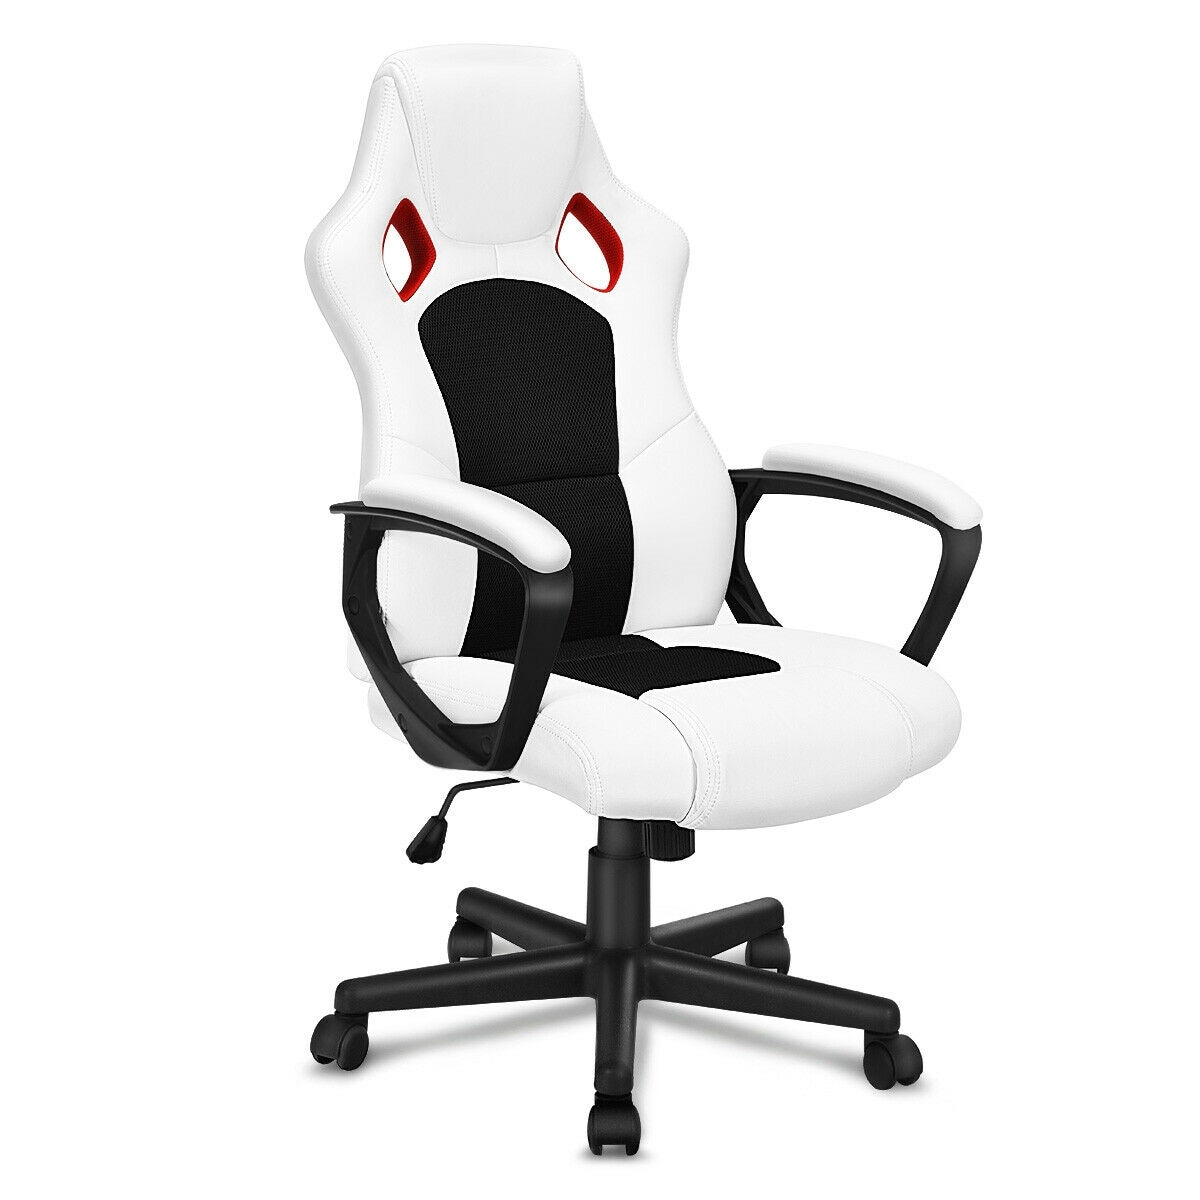 Racing Seat Office Chair Gymax Executive Racing Style High Back Bucket Seat Office Chair